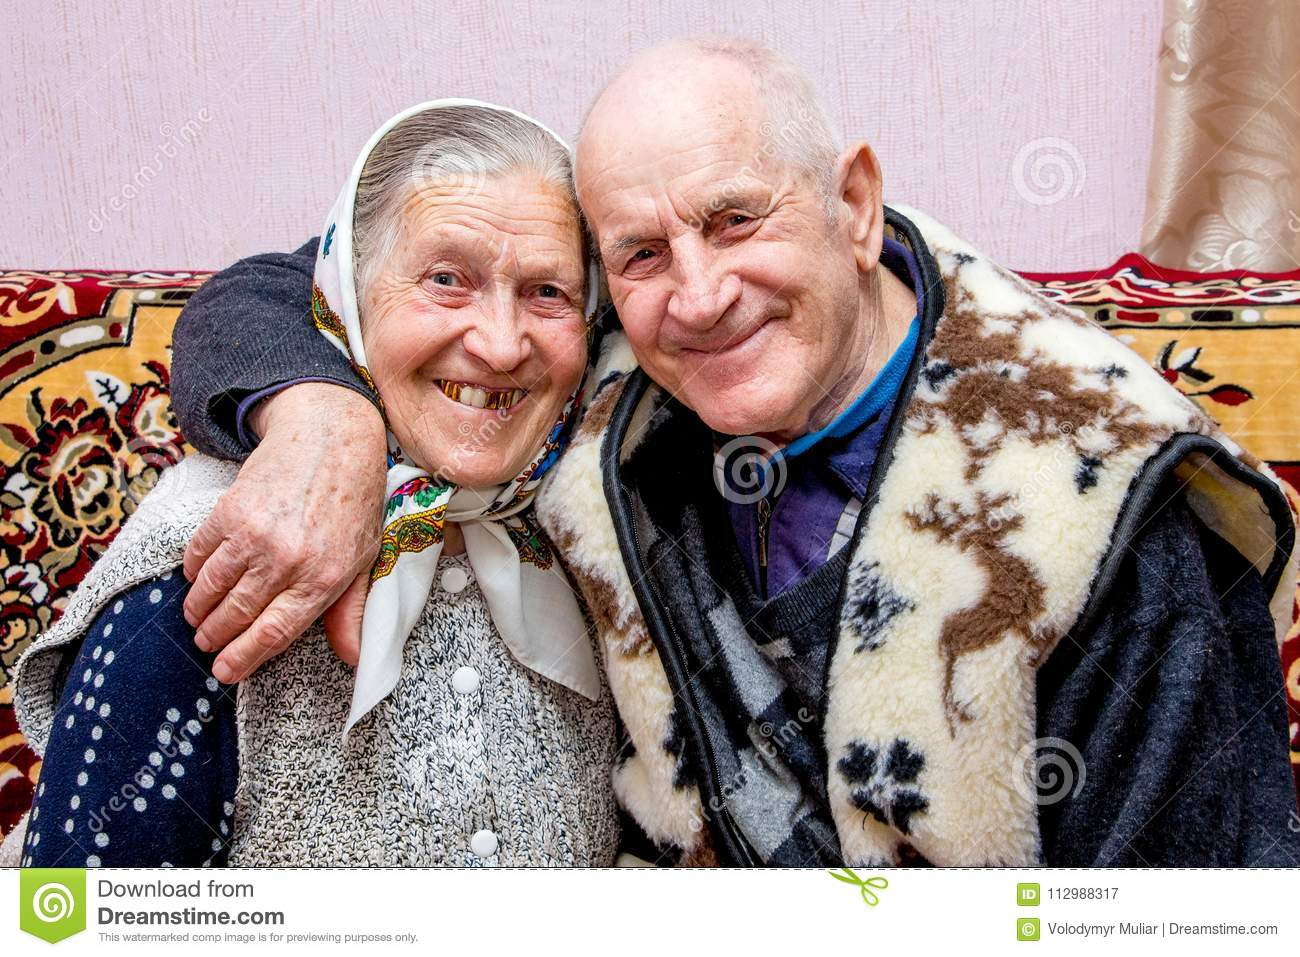 grandfather and grandmother embraced, they kept love in old age_